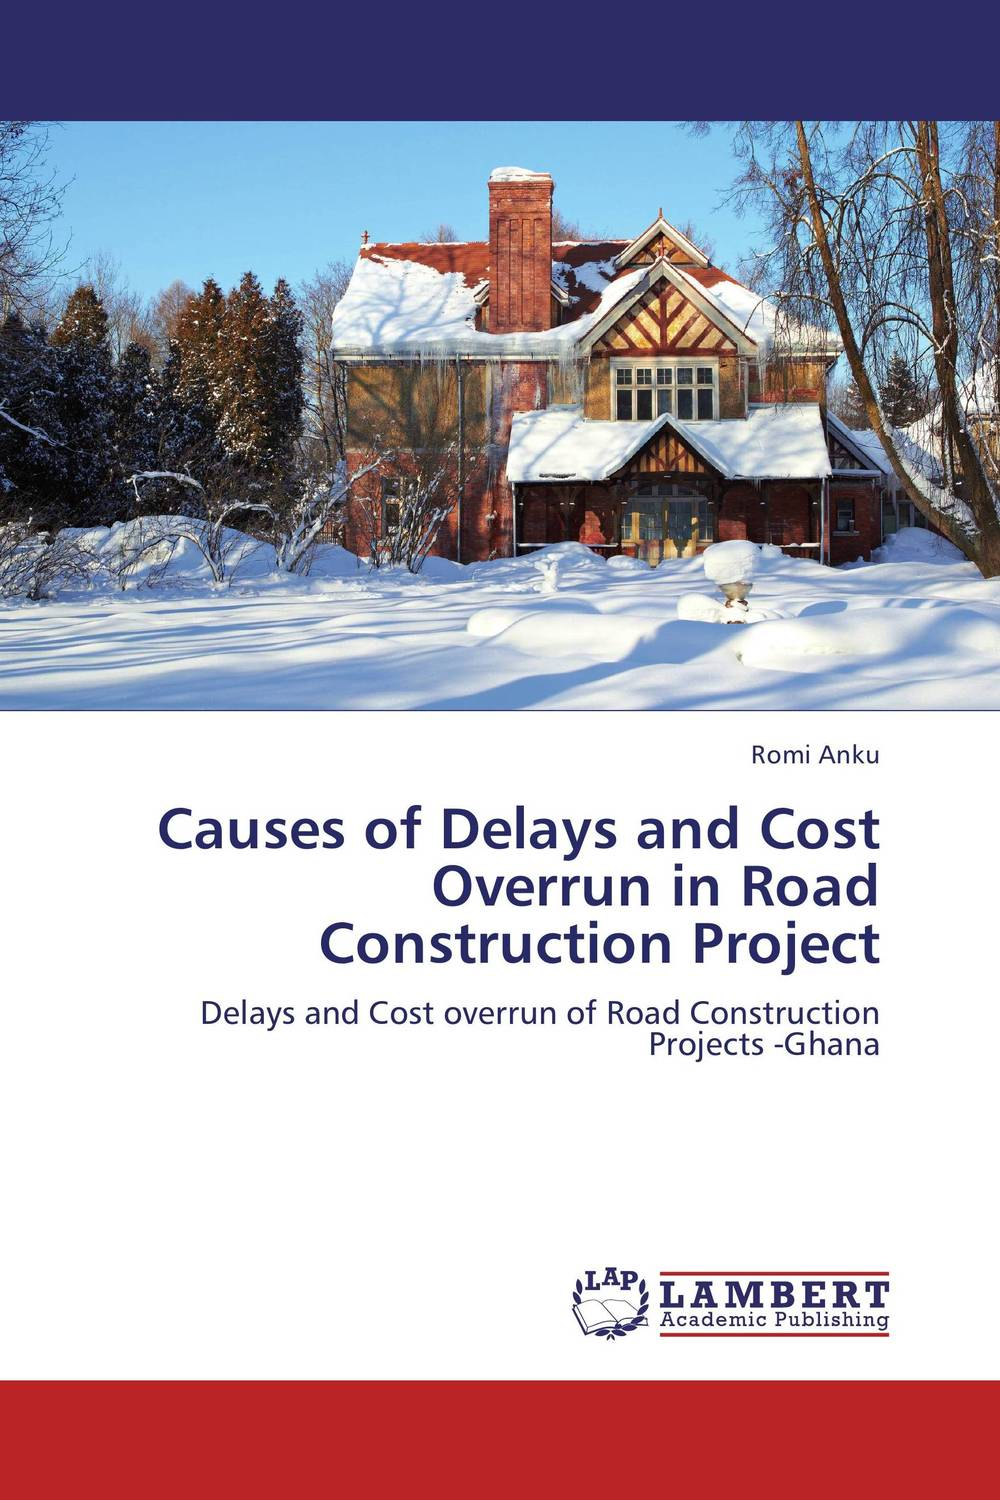 Causes of Delays and Cost Overrun in Road Construction Project romi anku causes of delays and cost overrun in road construction project